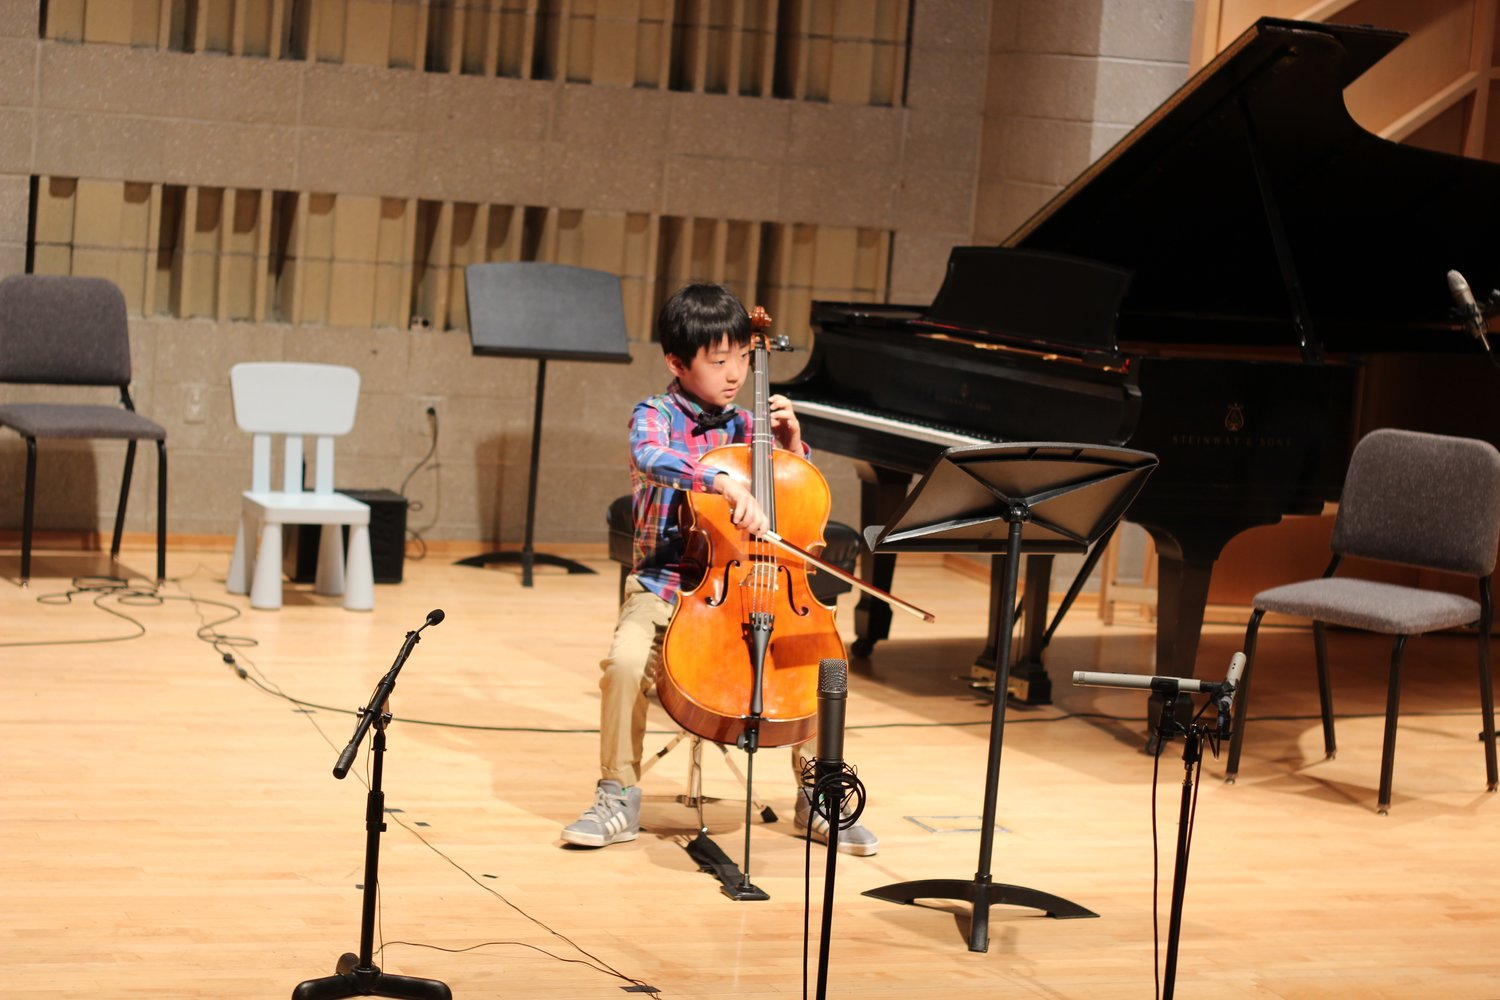 new-jersey-music-school-cello-lessons.jpg